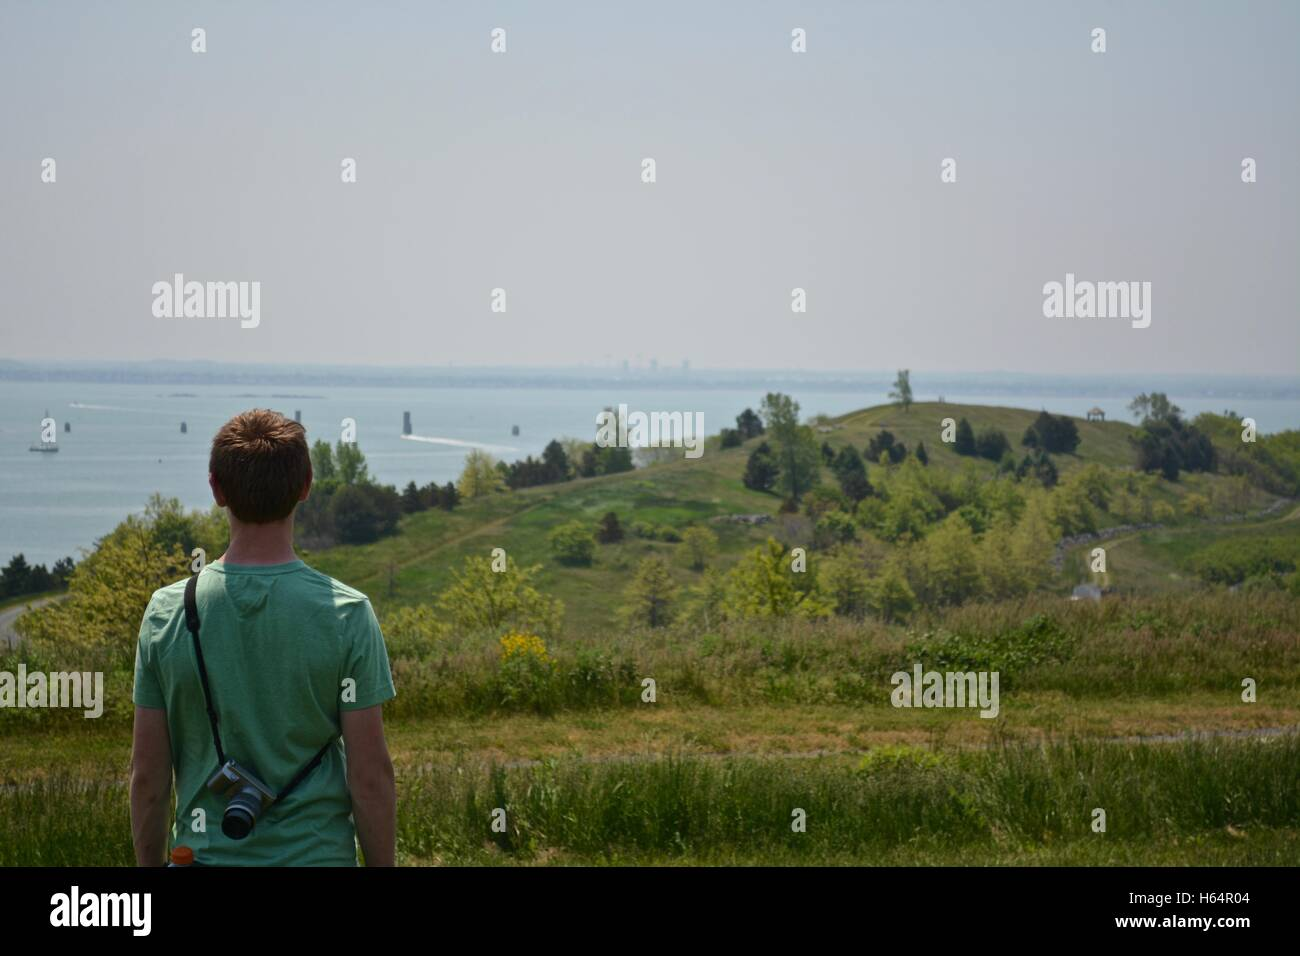 A young person on a hill atop an island in Boston Harbor. - Stock Image